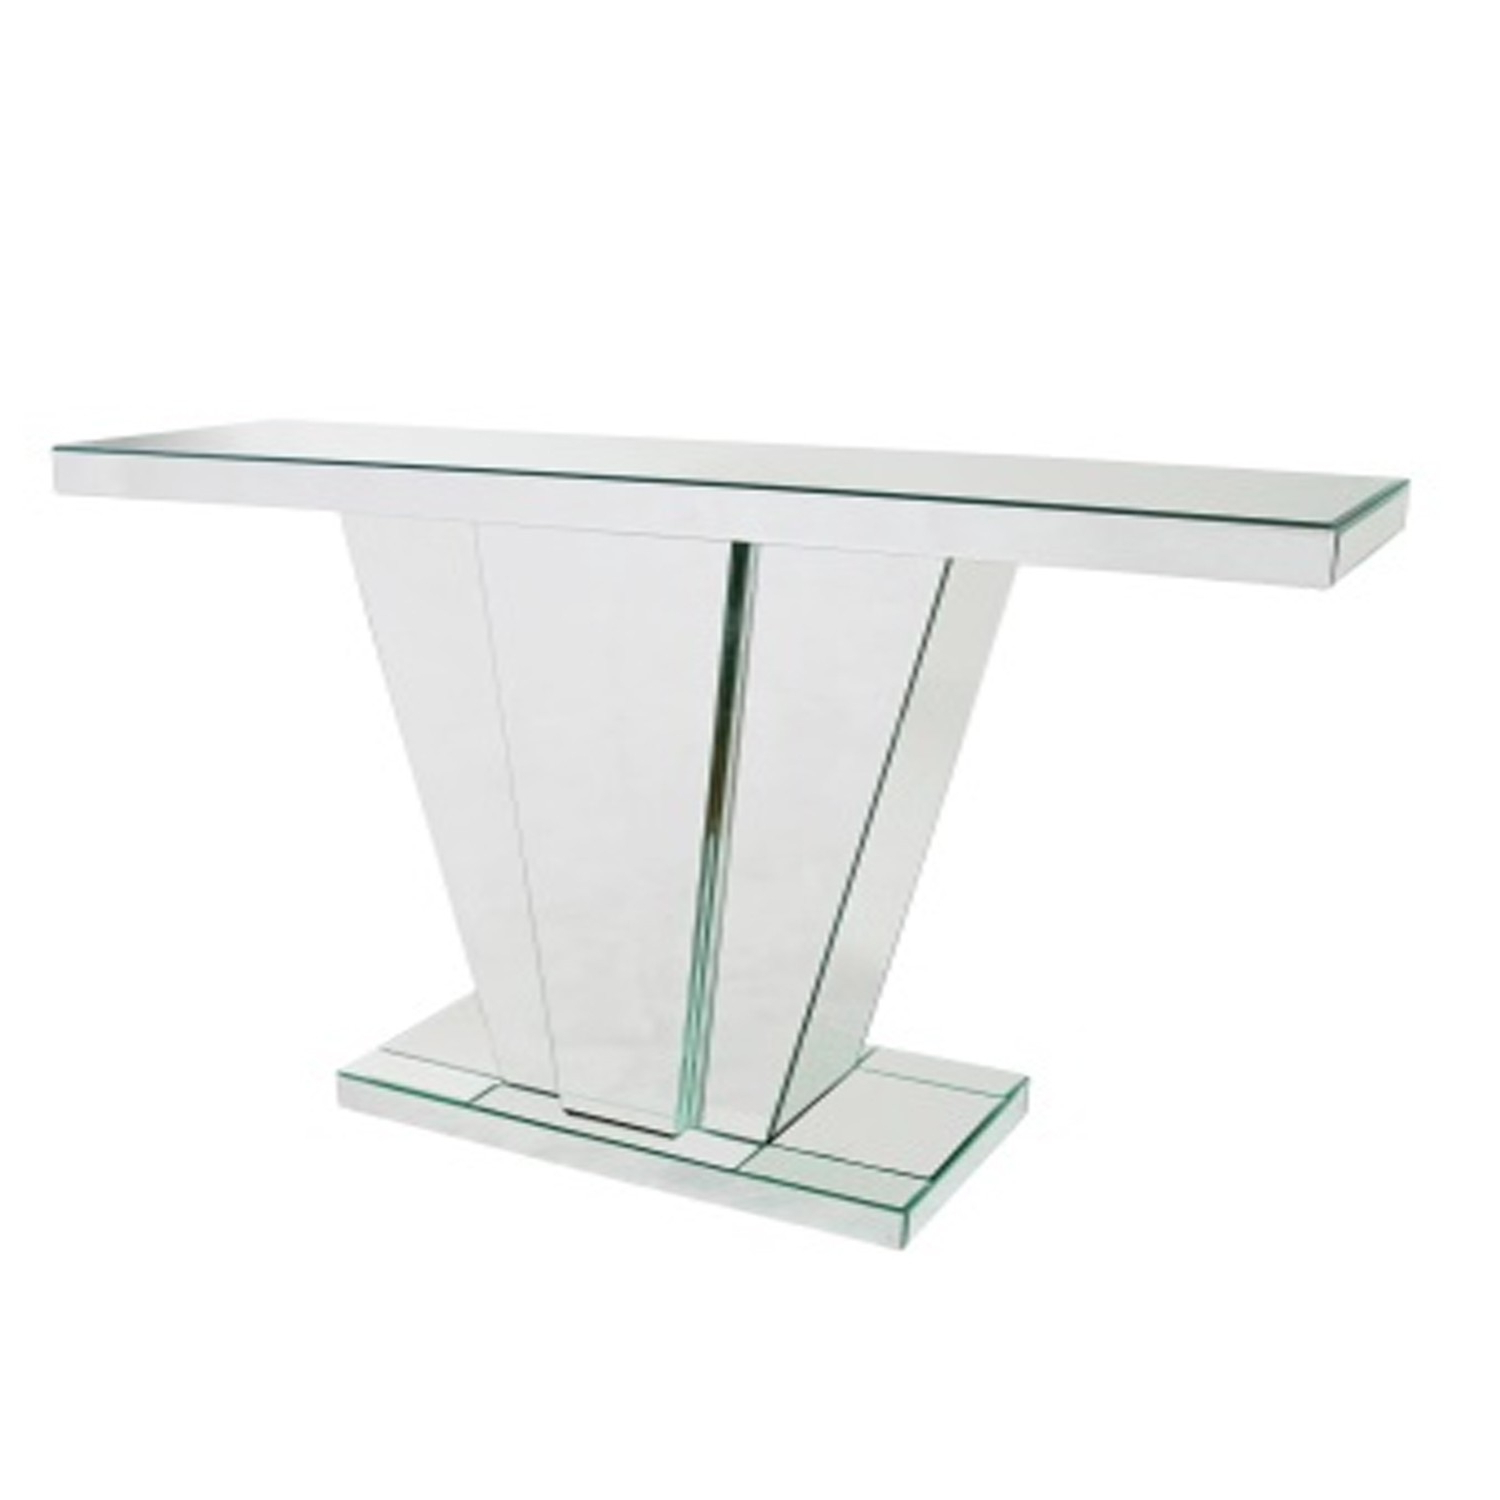 Trendy V Frame Mirrored Console Table Abreo Home Furniture With Regard To Frame Console Tables (View 18 of 20)